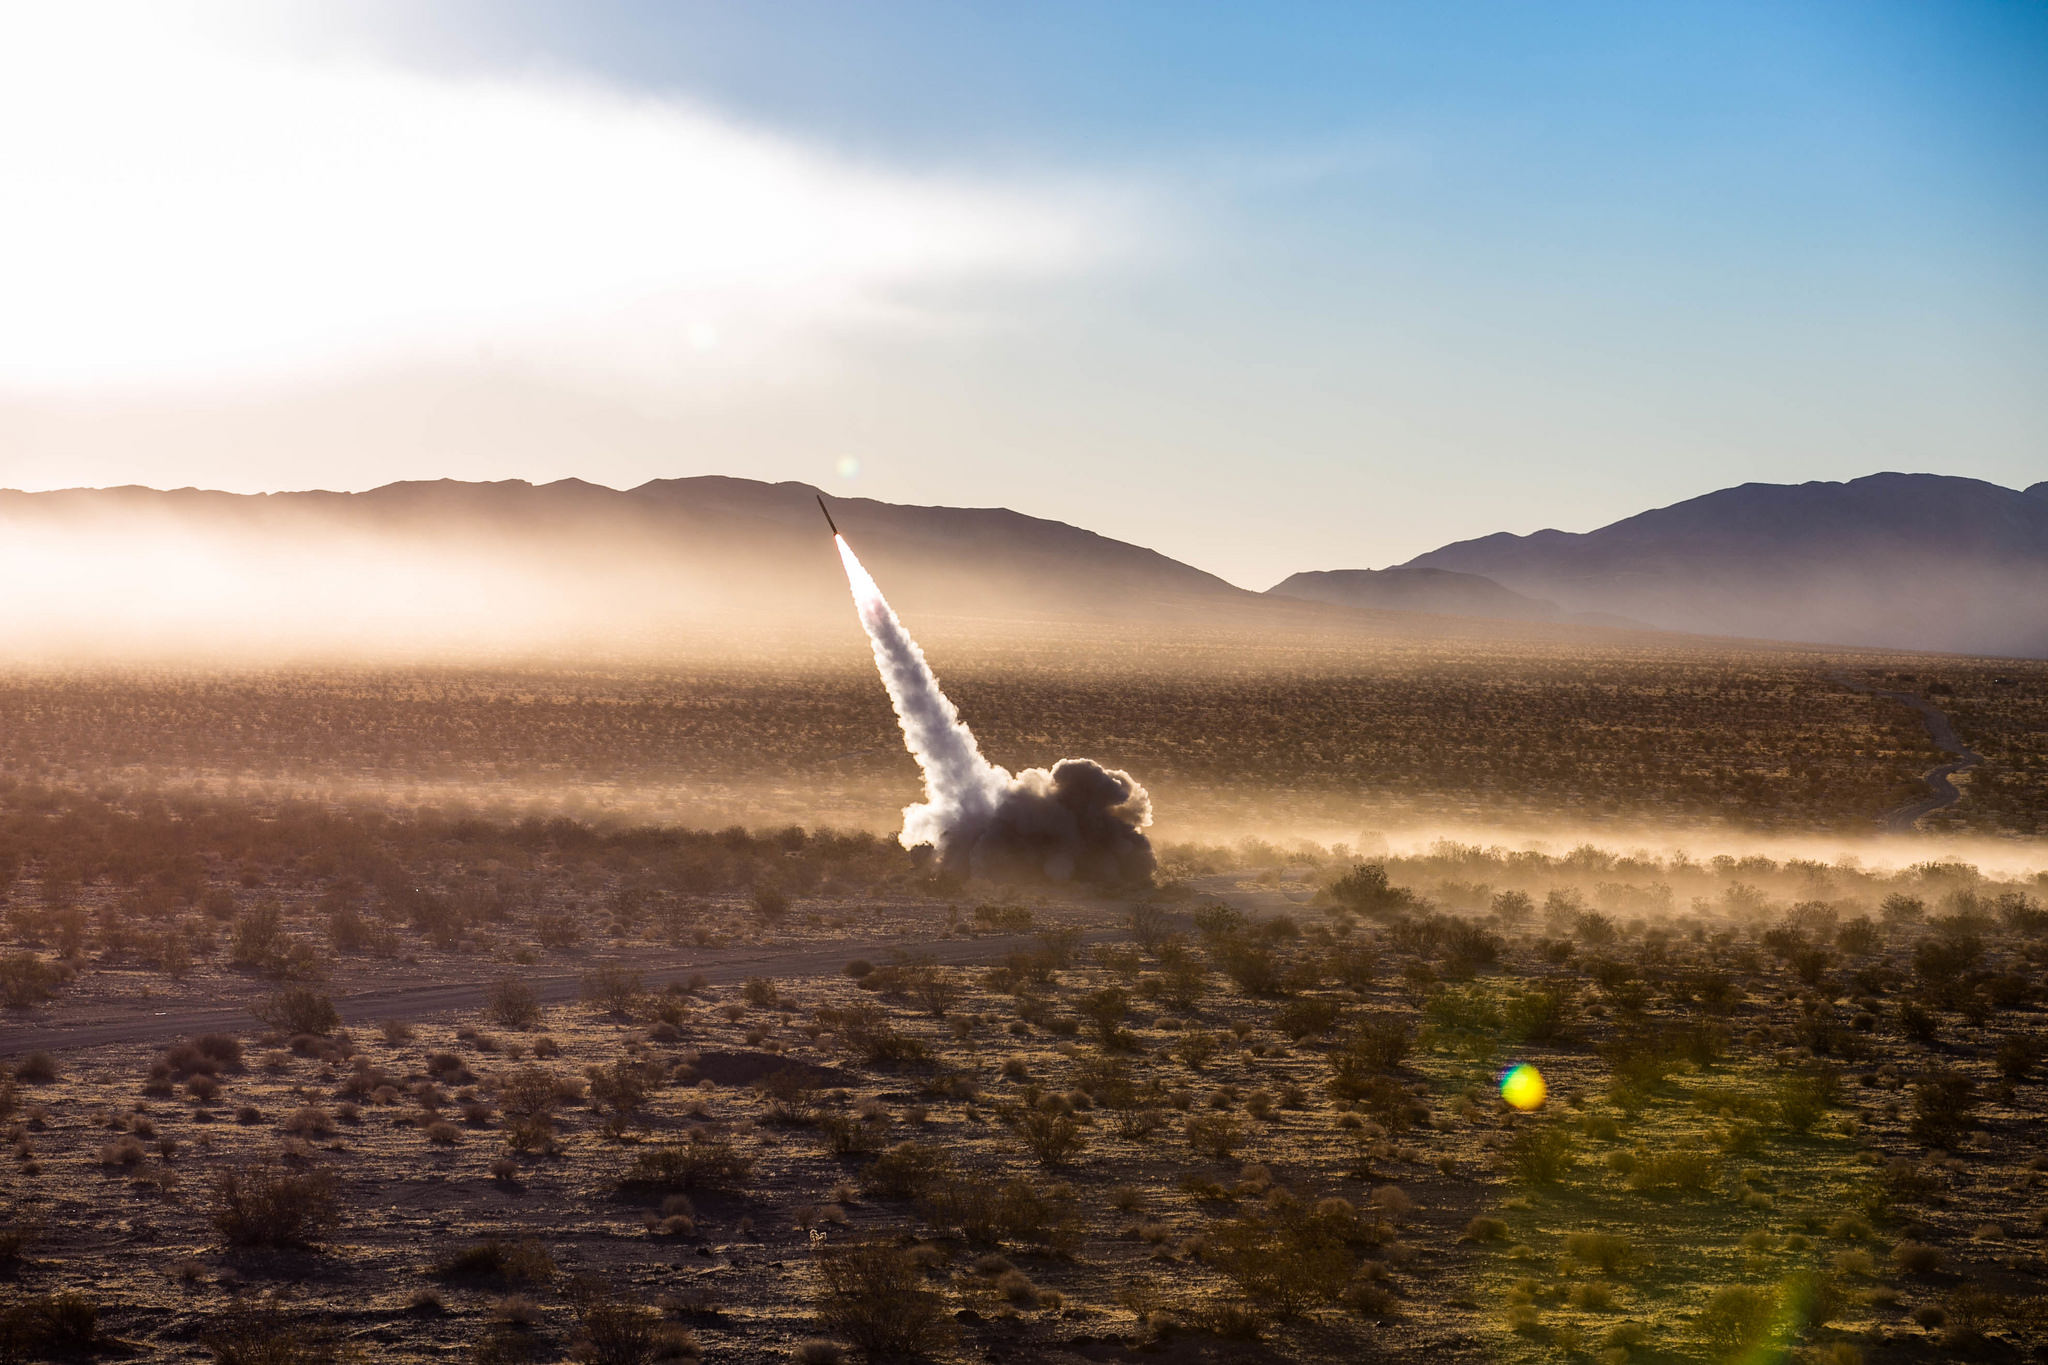 U.S. Marines assigned to Battery R, 5th Battalion, 11th Marine Regiment launch the High Mobility Artillery Rocket System from a Guided Multiple Launch Rocket System during Operation Steel Knight aboard the Marine Corps Air Ground Combat Center, Twentynine Palms, Calif. (Pfc. William Chockey/Marine Corps)